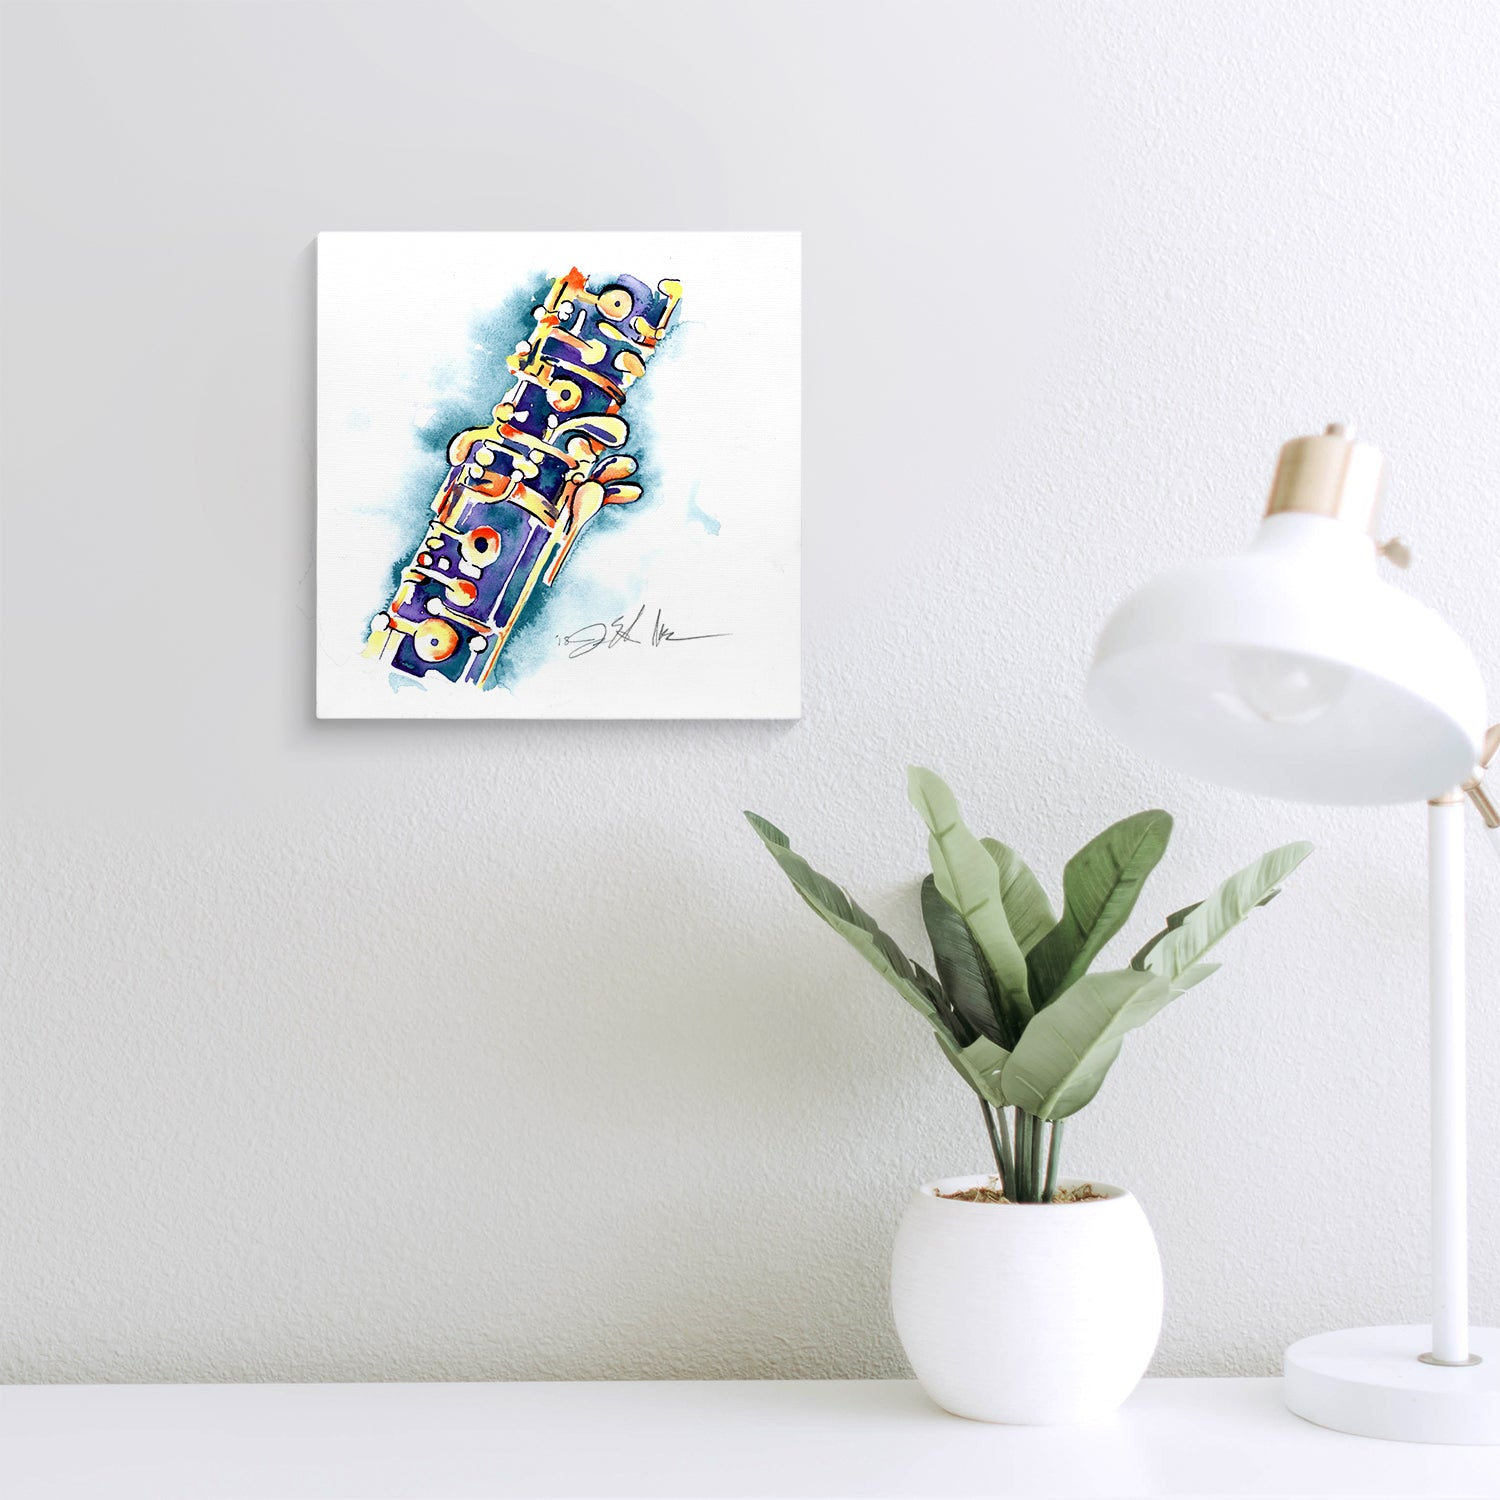 Blue and gold oboe painting on a wall